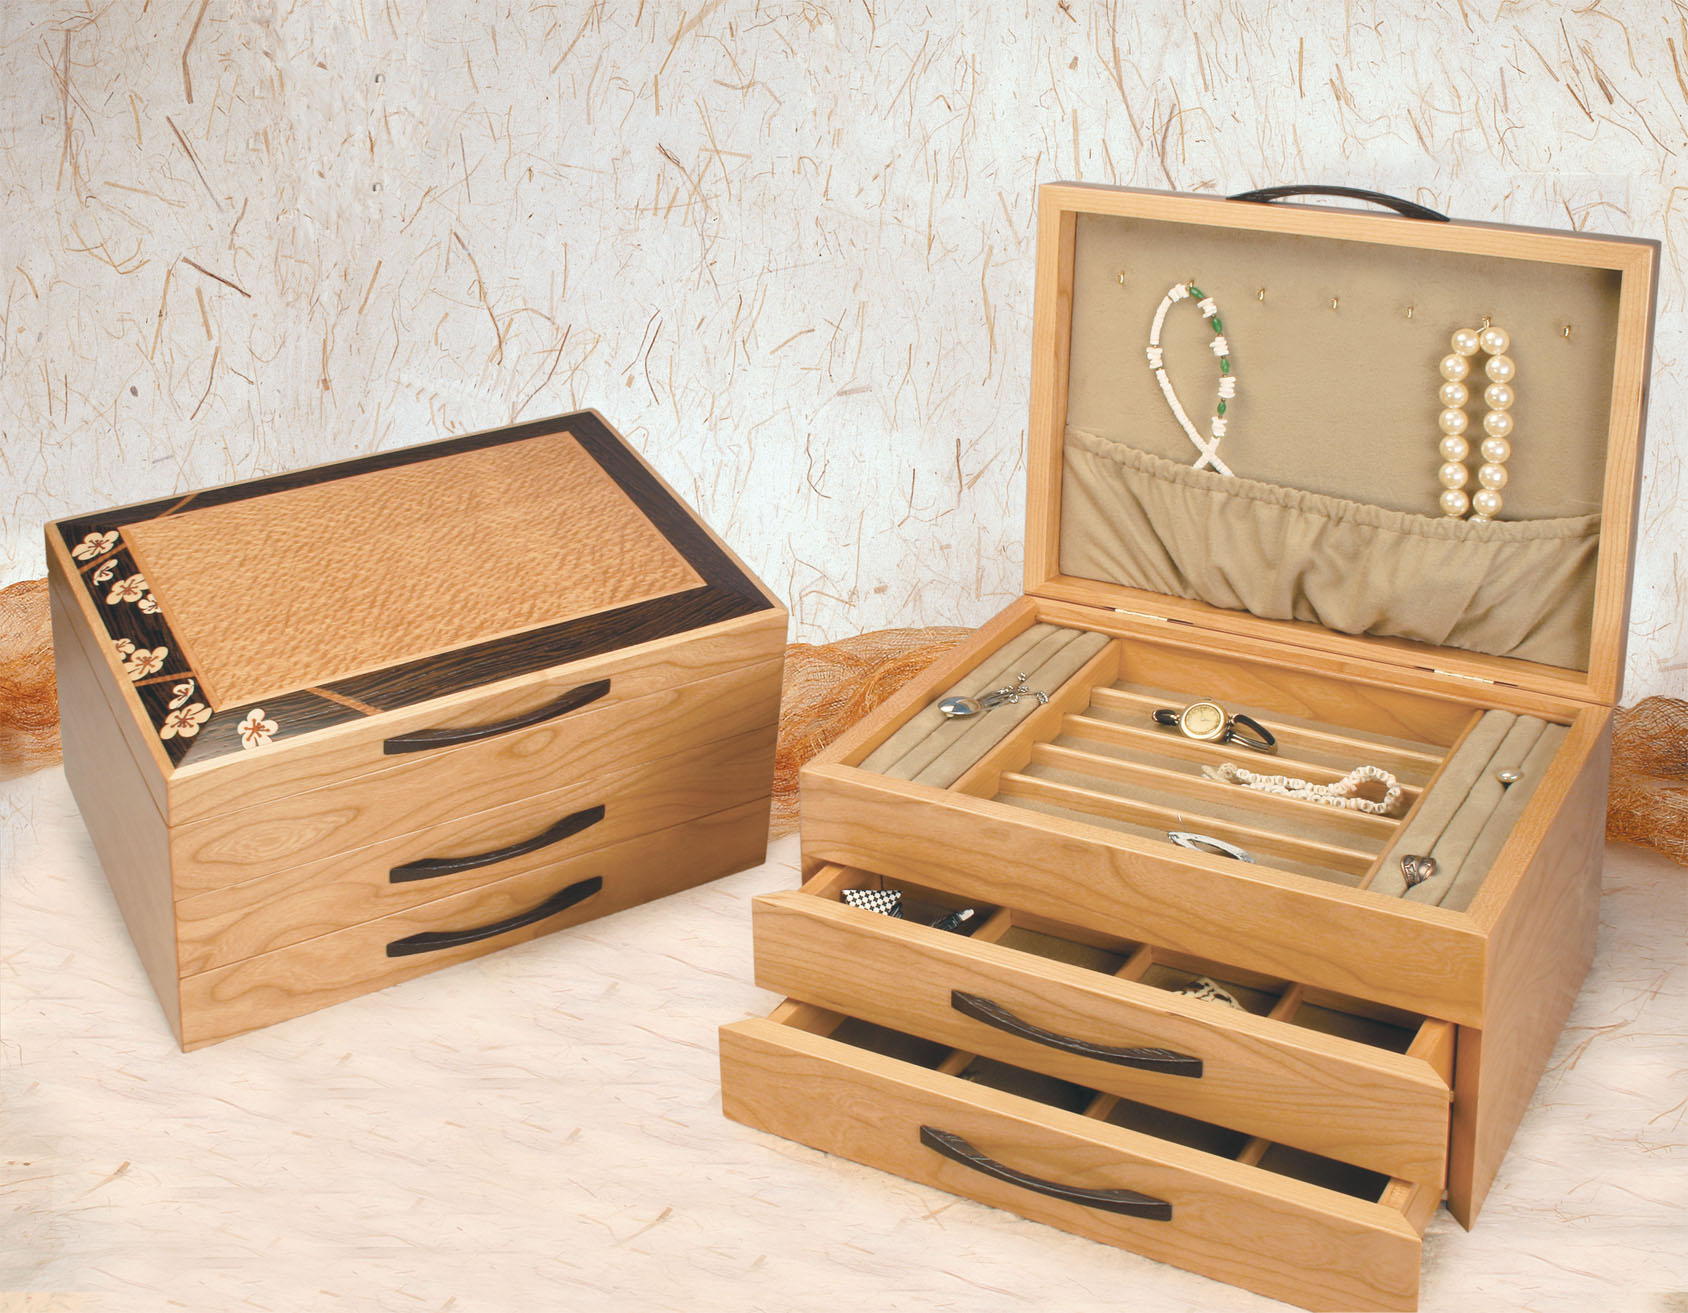 Wood jewelry boxes great fathers day gift idea view larger image solutioingenieria Images